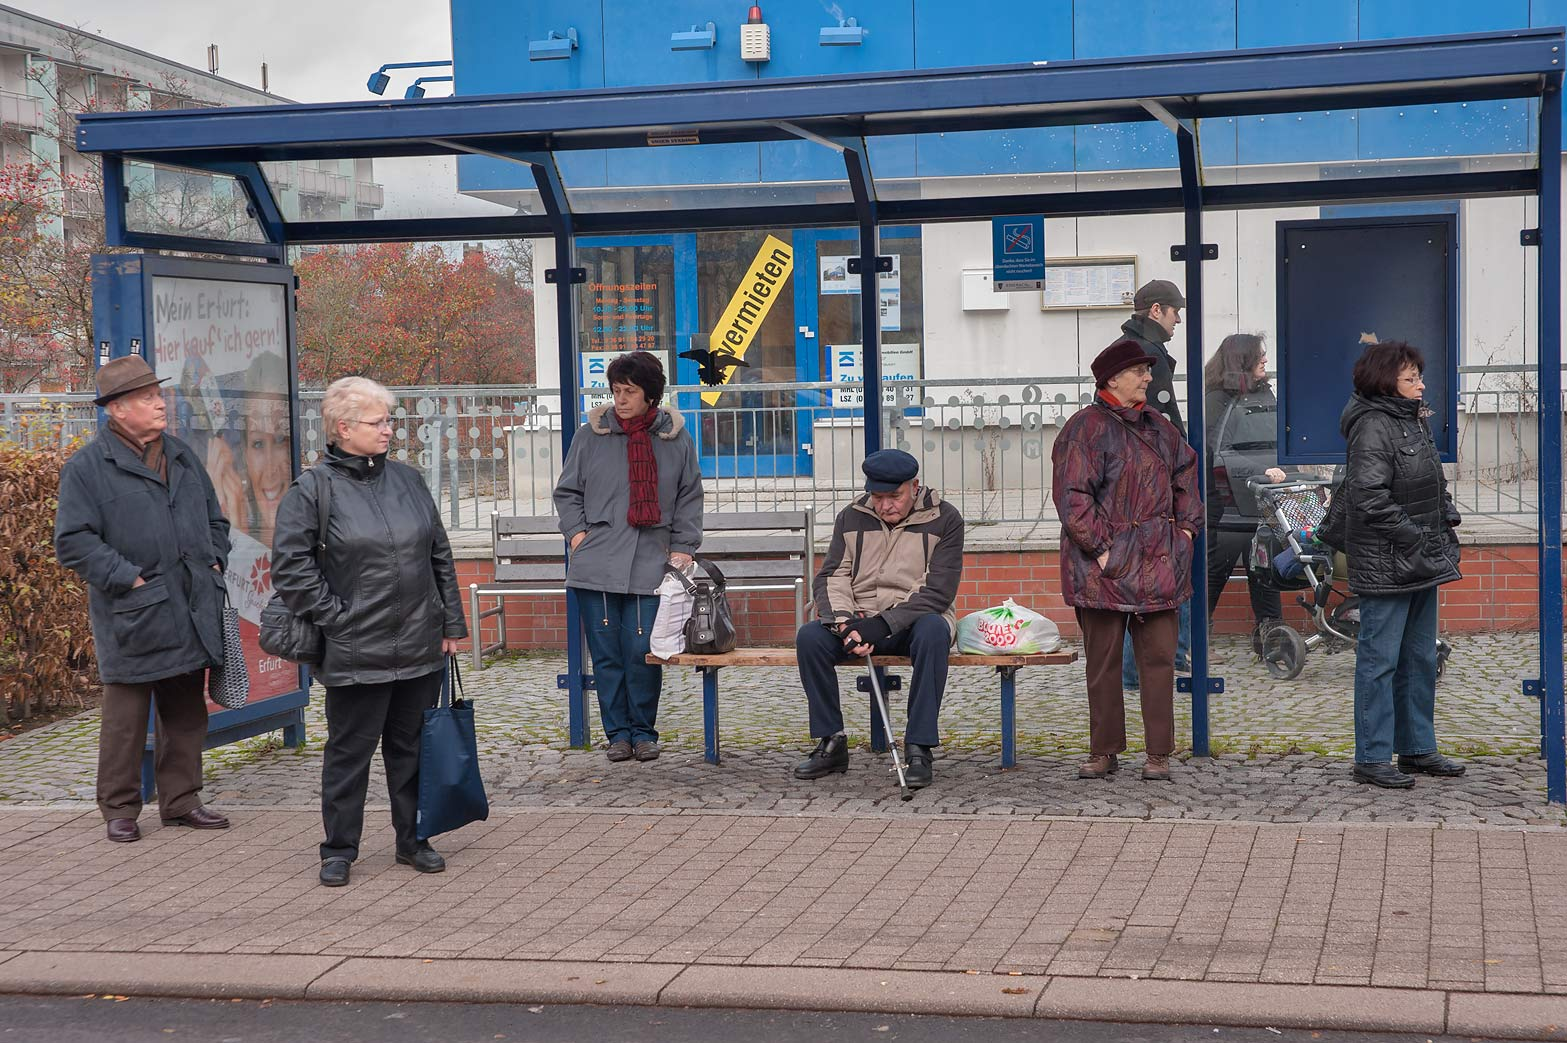 Passengers waiting on a bus stop. Eisenach, Germany